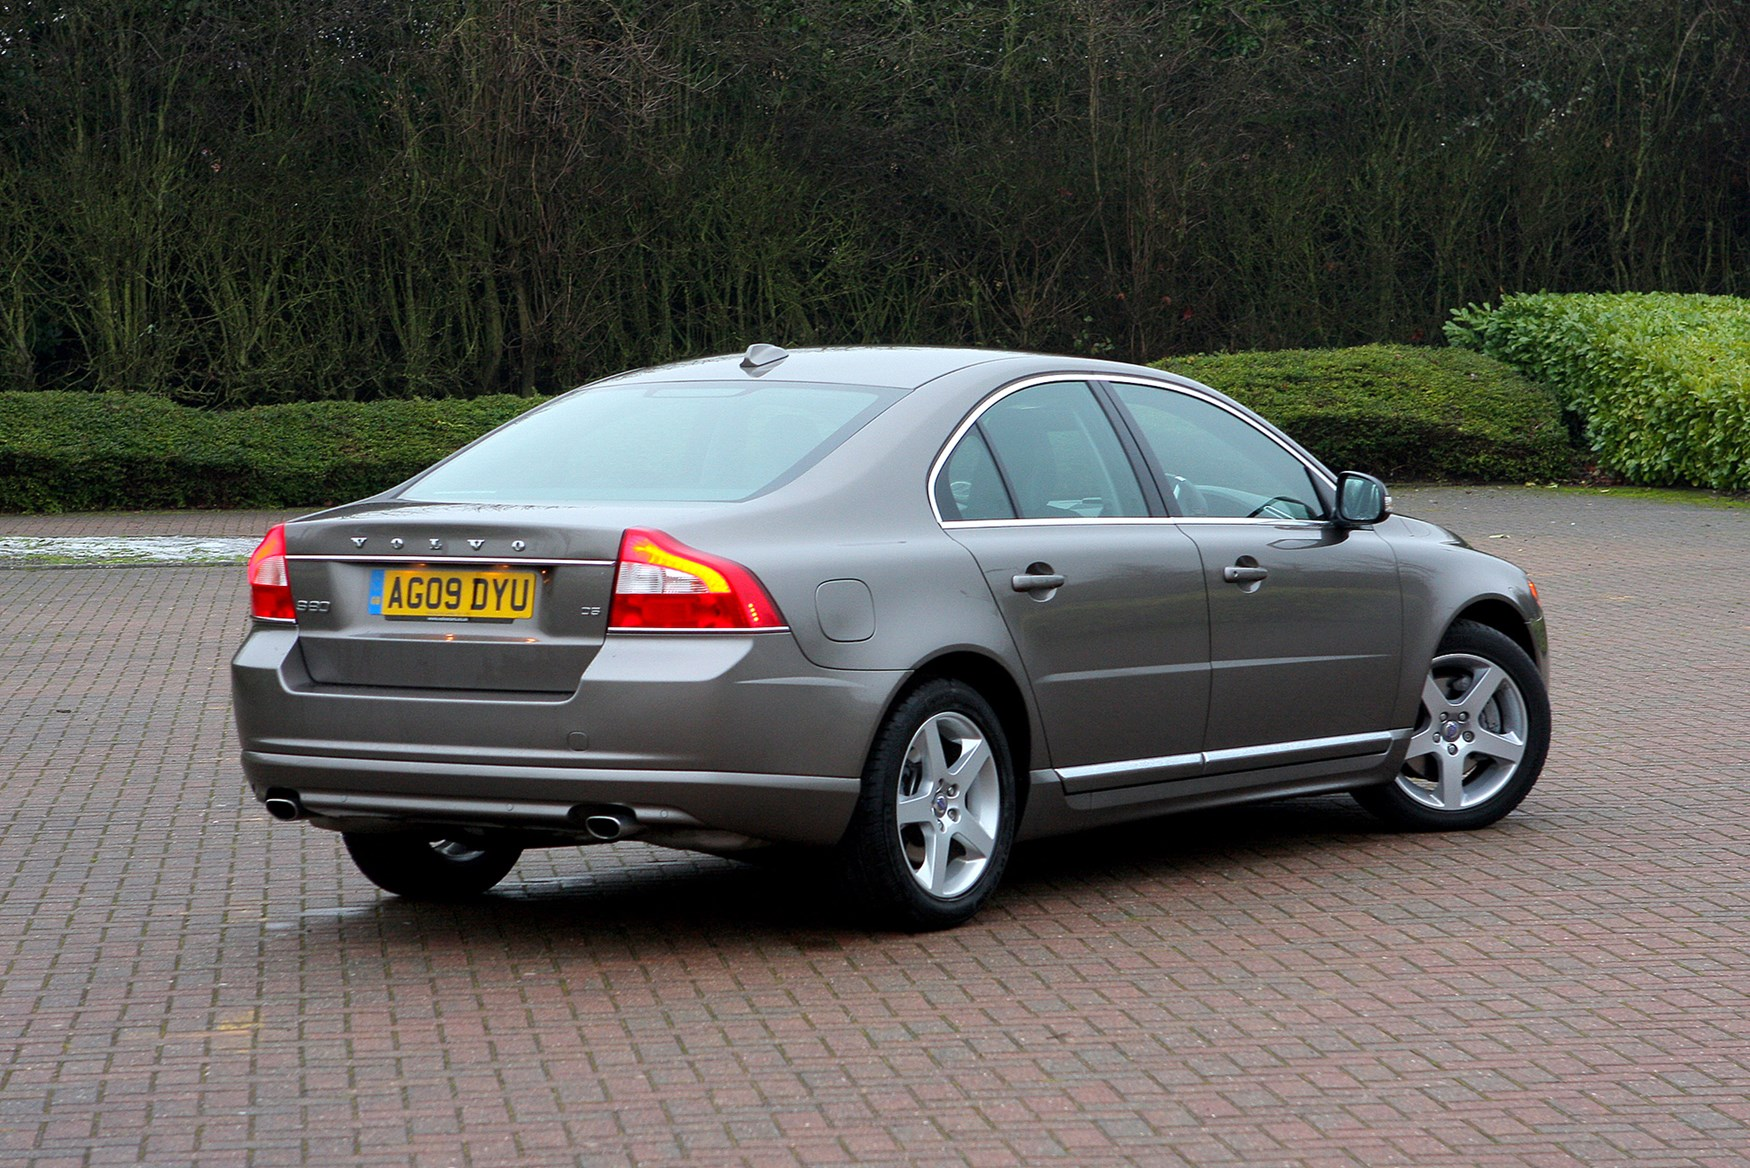 Volvo S80 Saloon Review (2006 - 2016) | Parkers